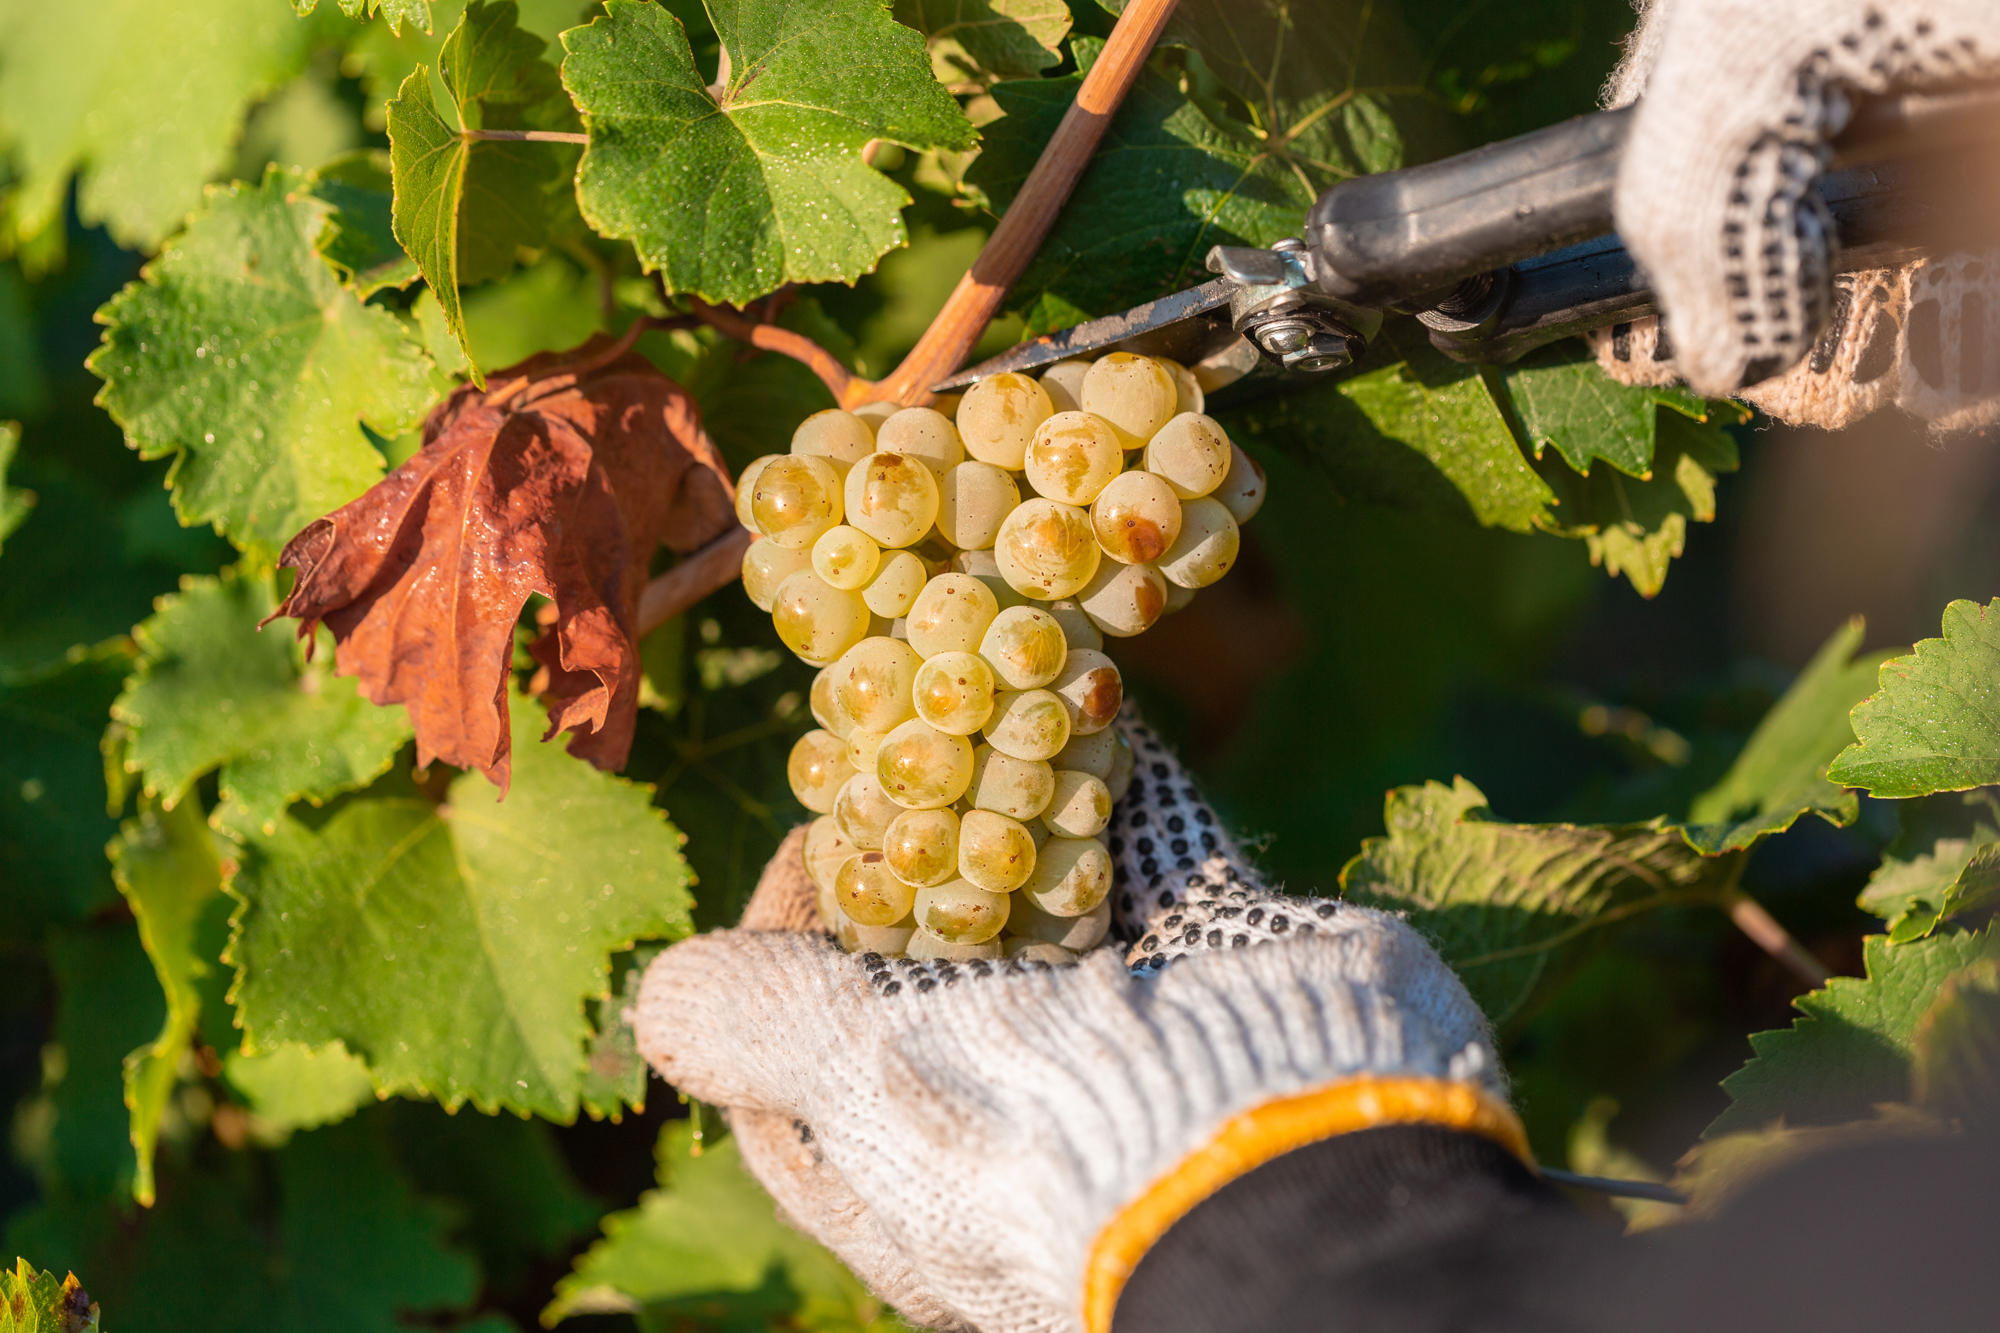 MORE THAN 10,000 TONS OF GRAPES HARVESTED IN KOBLEVO